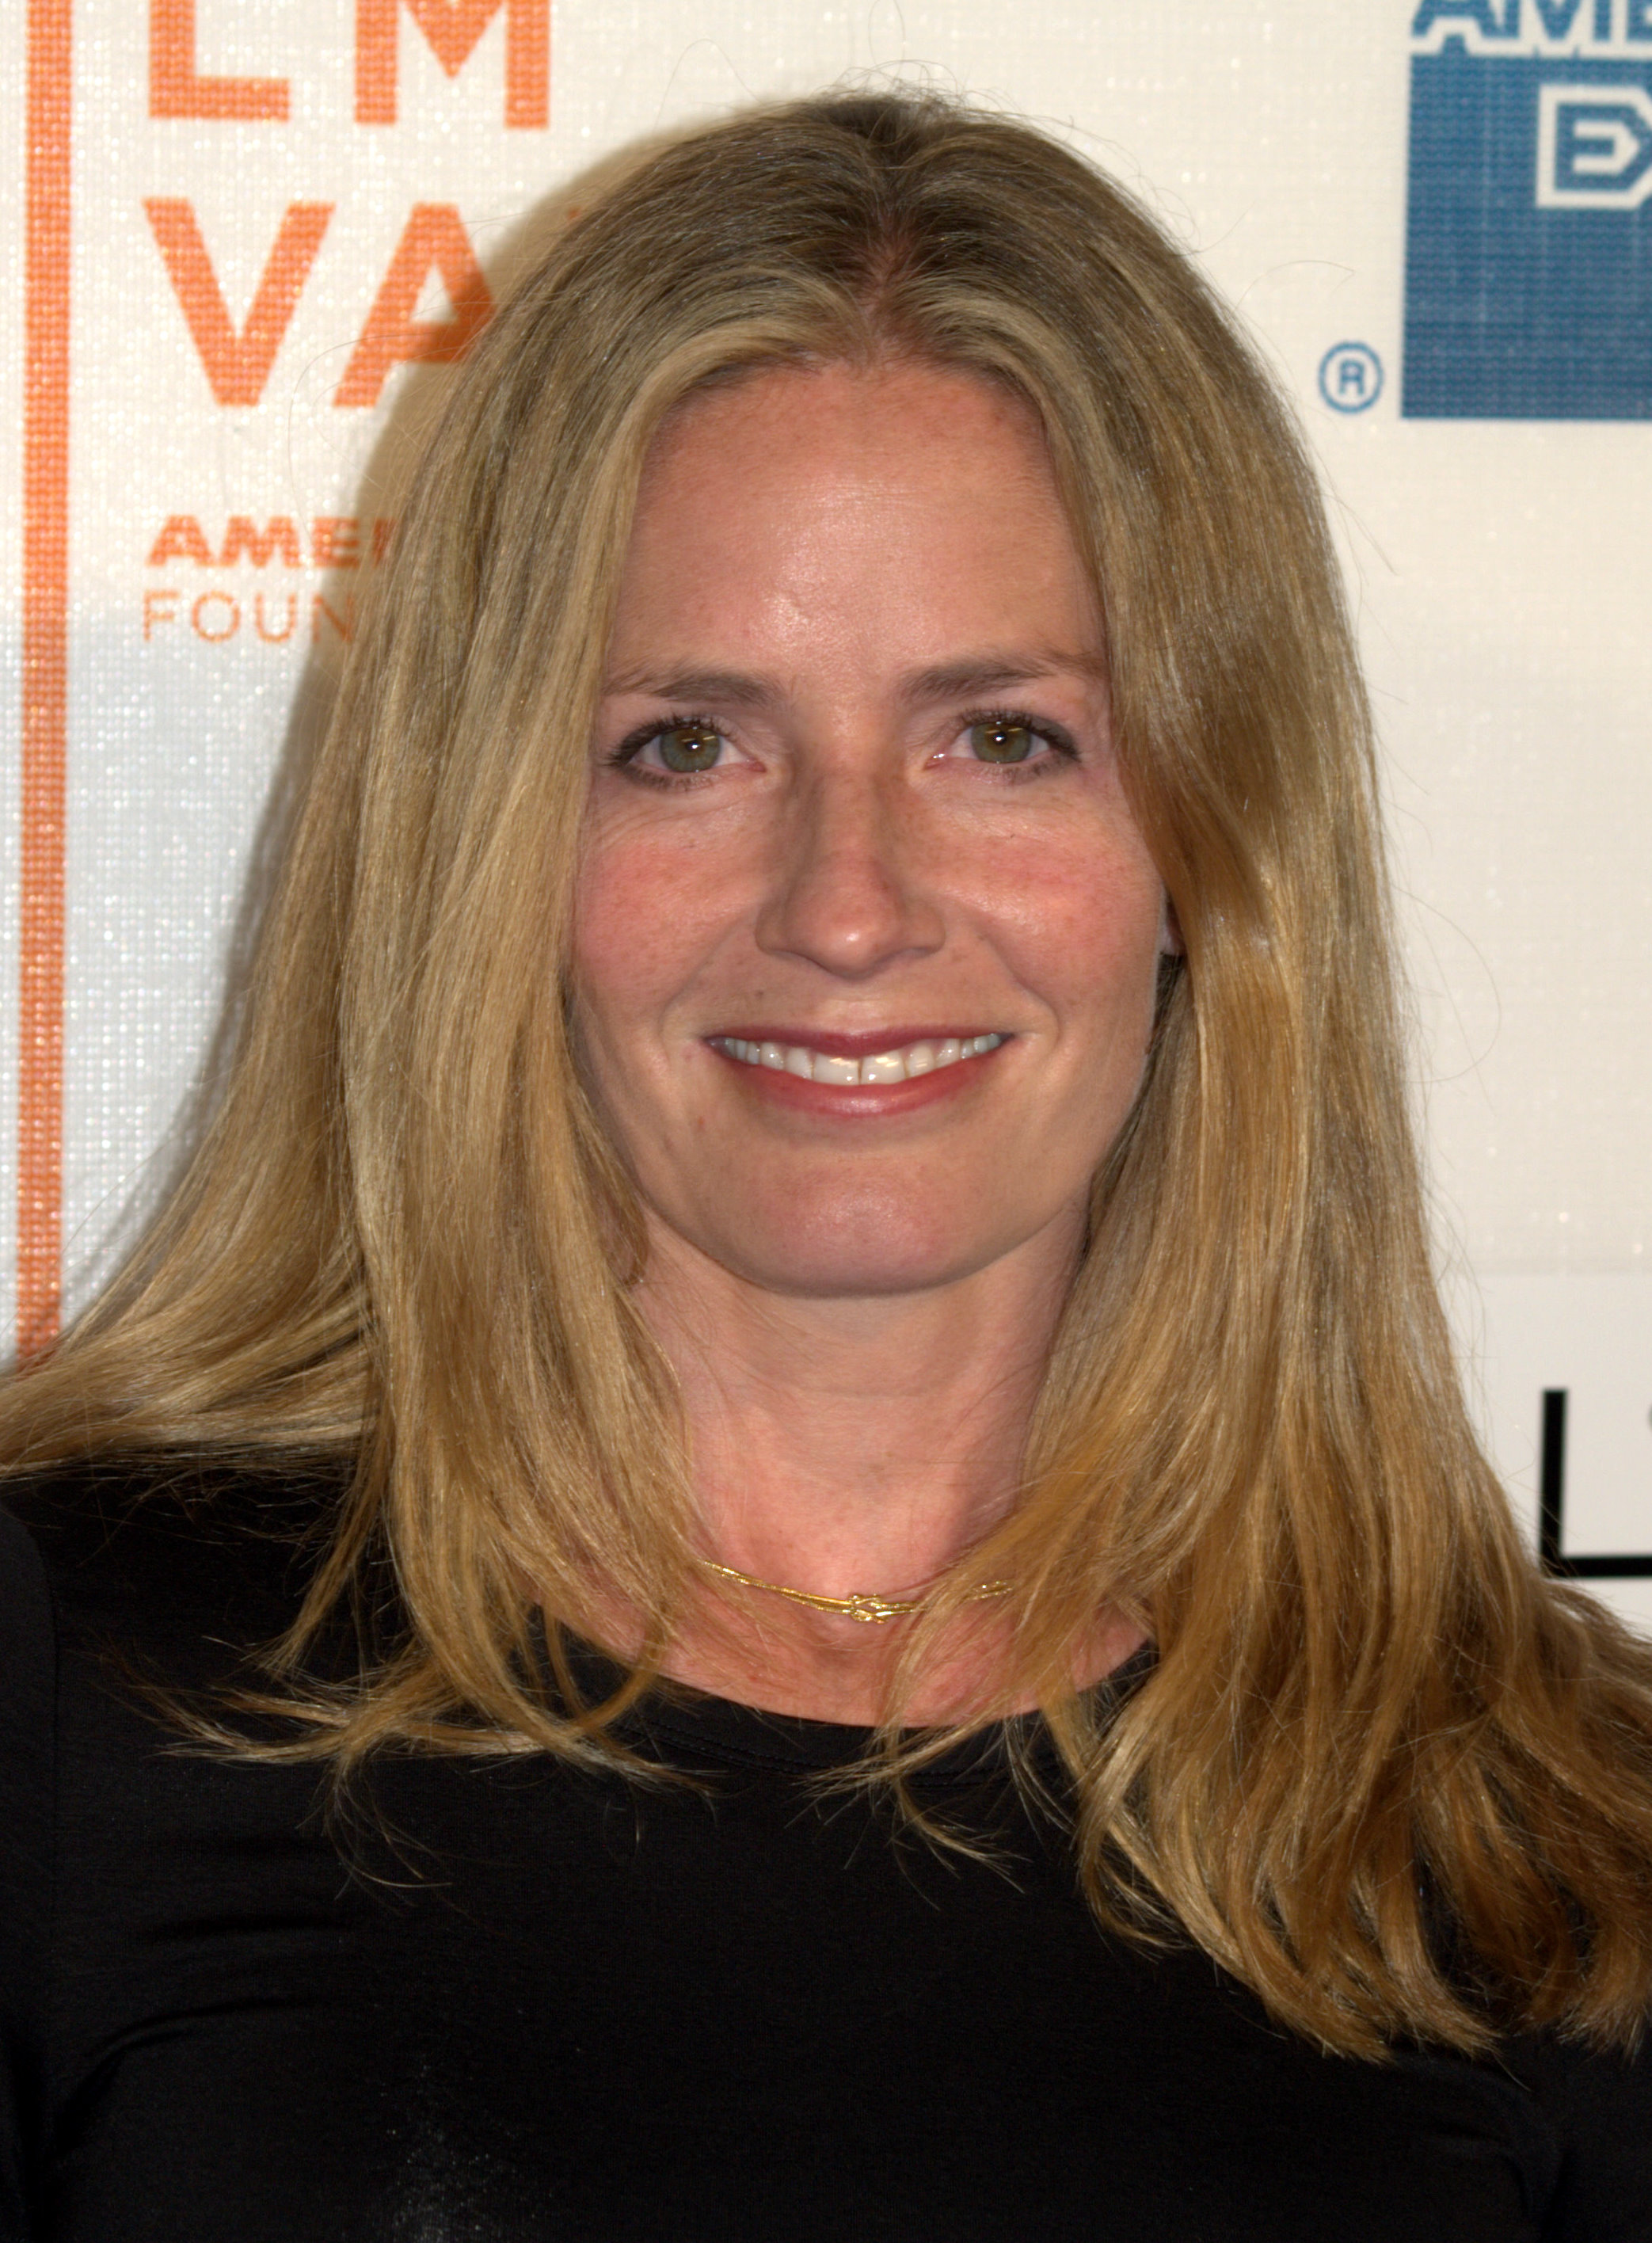 Tips: Elisabeth Shue, 2017s chic hair style of the cool talented  actress